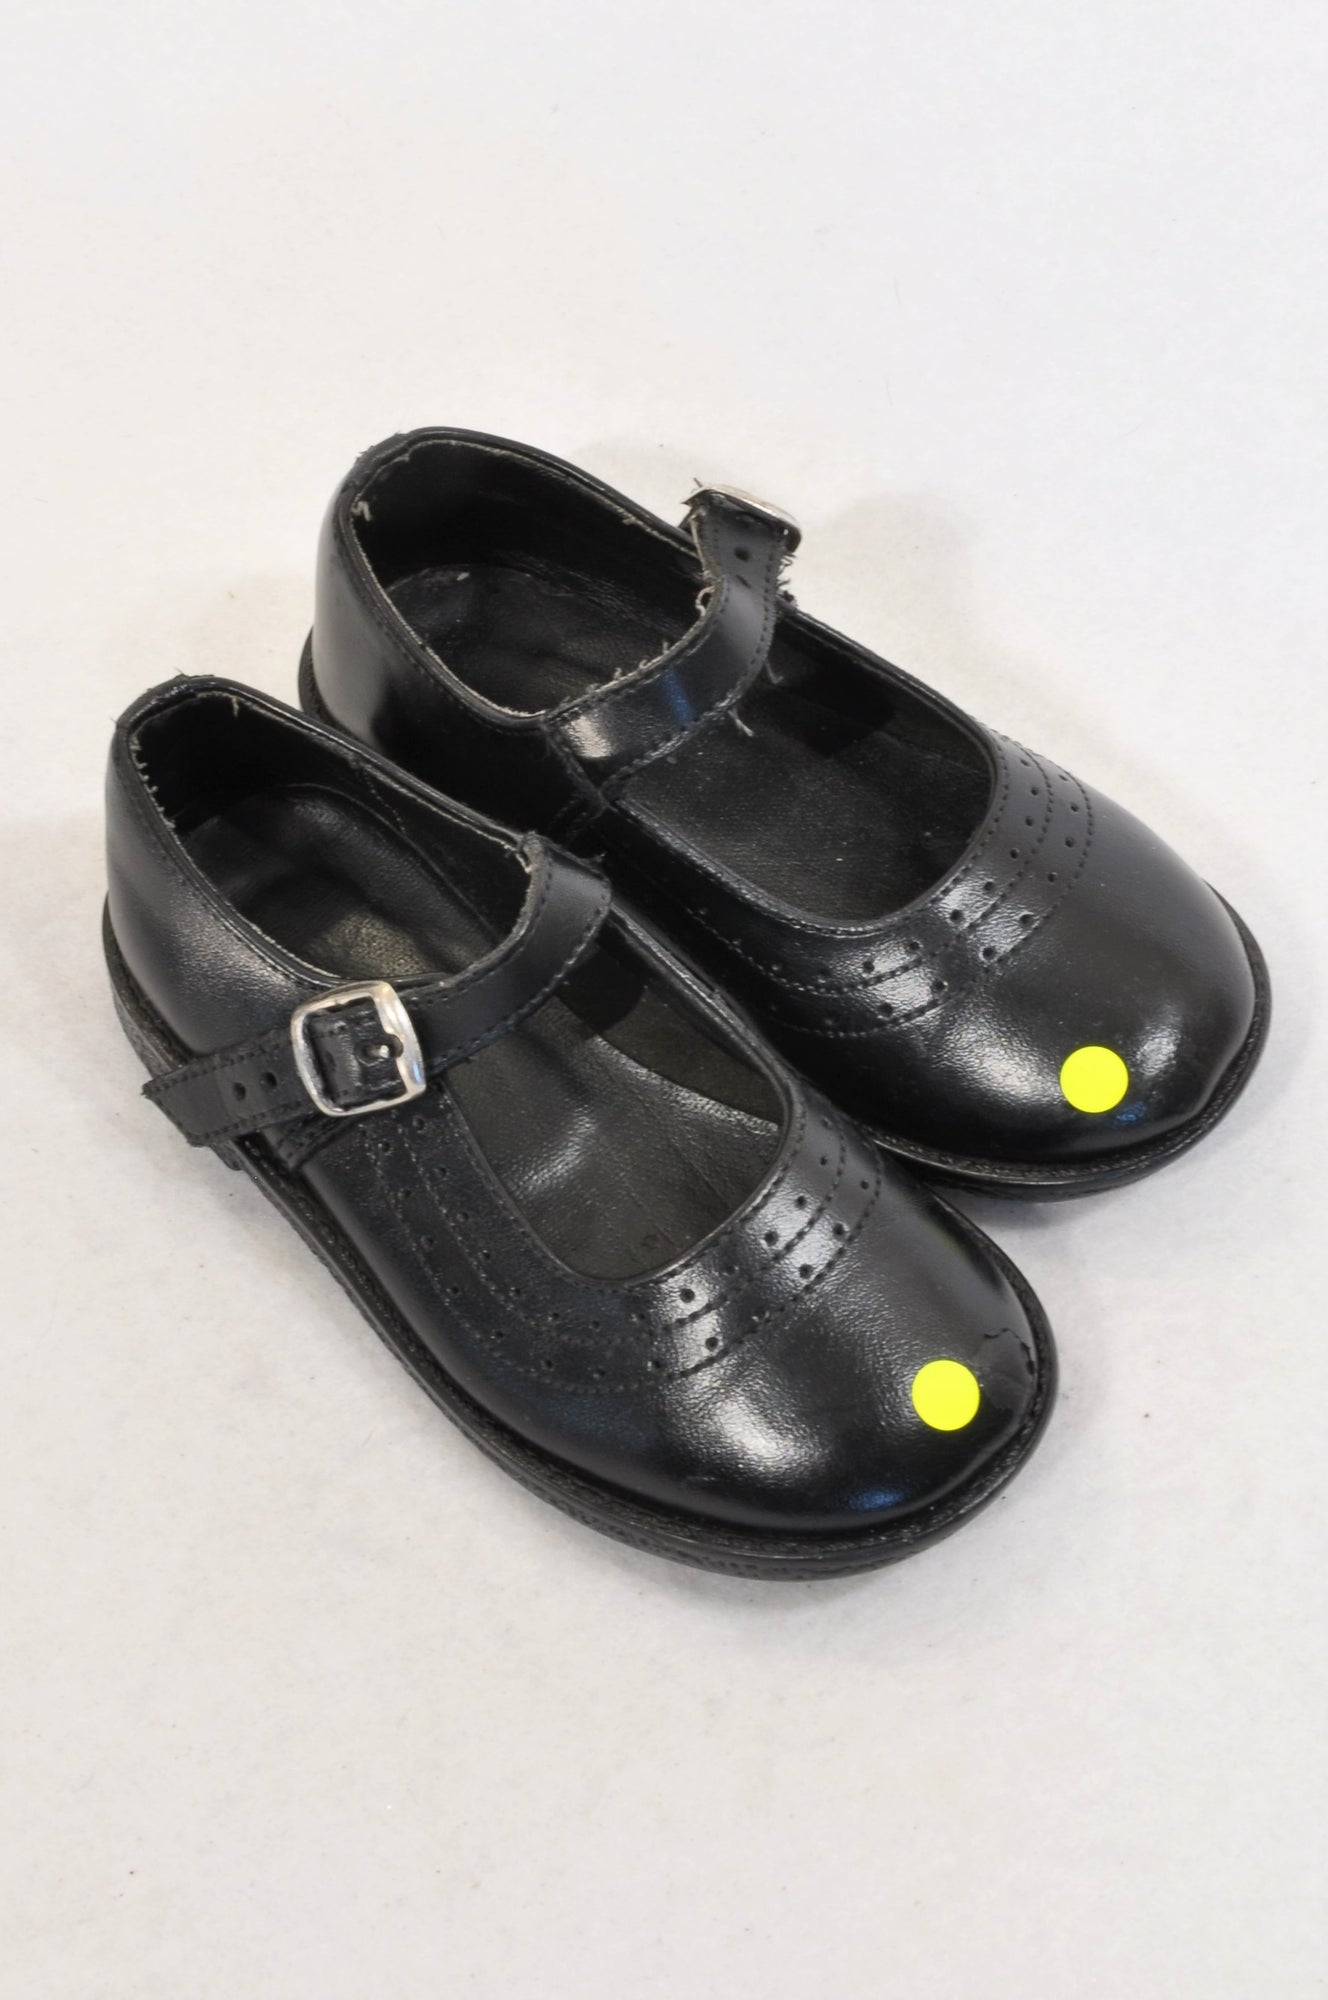 Unbranded Black Size 9 School Buckle Shoes Girls 3-4 years